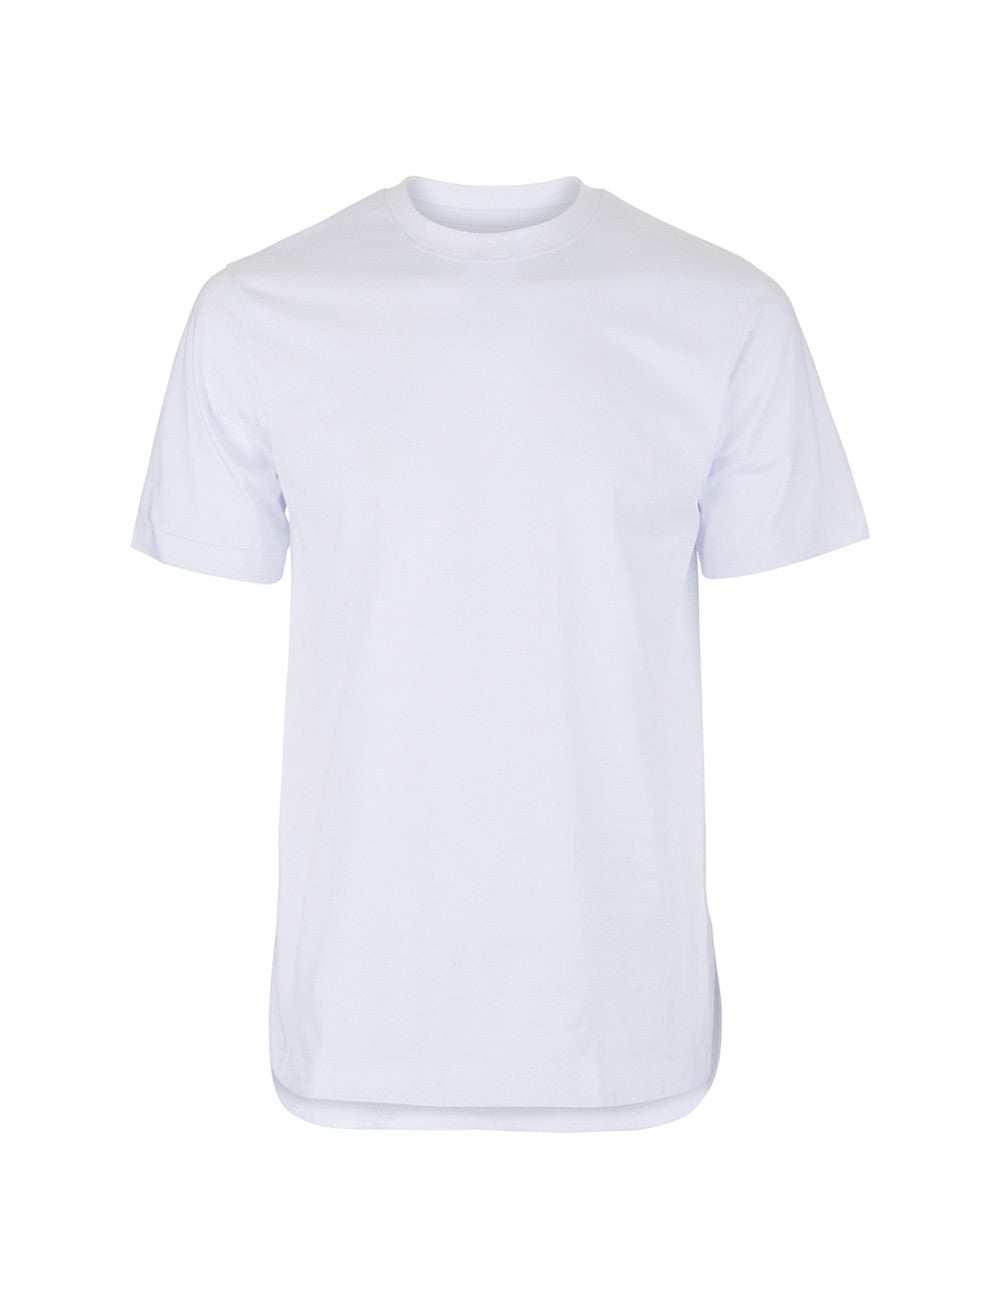 Rounded T-Shirt - Blanc